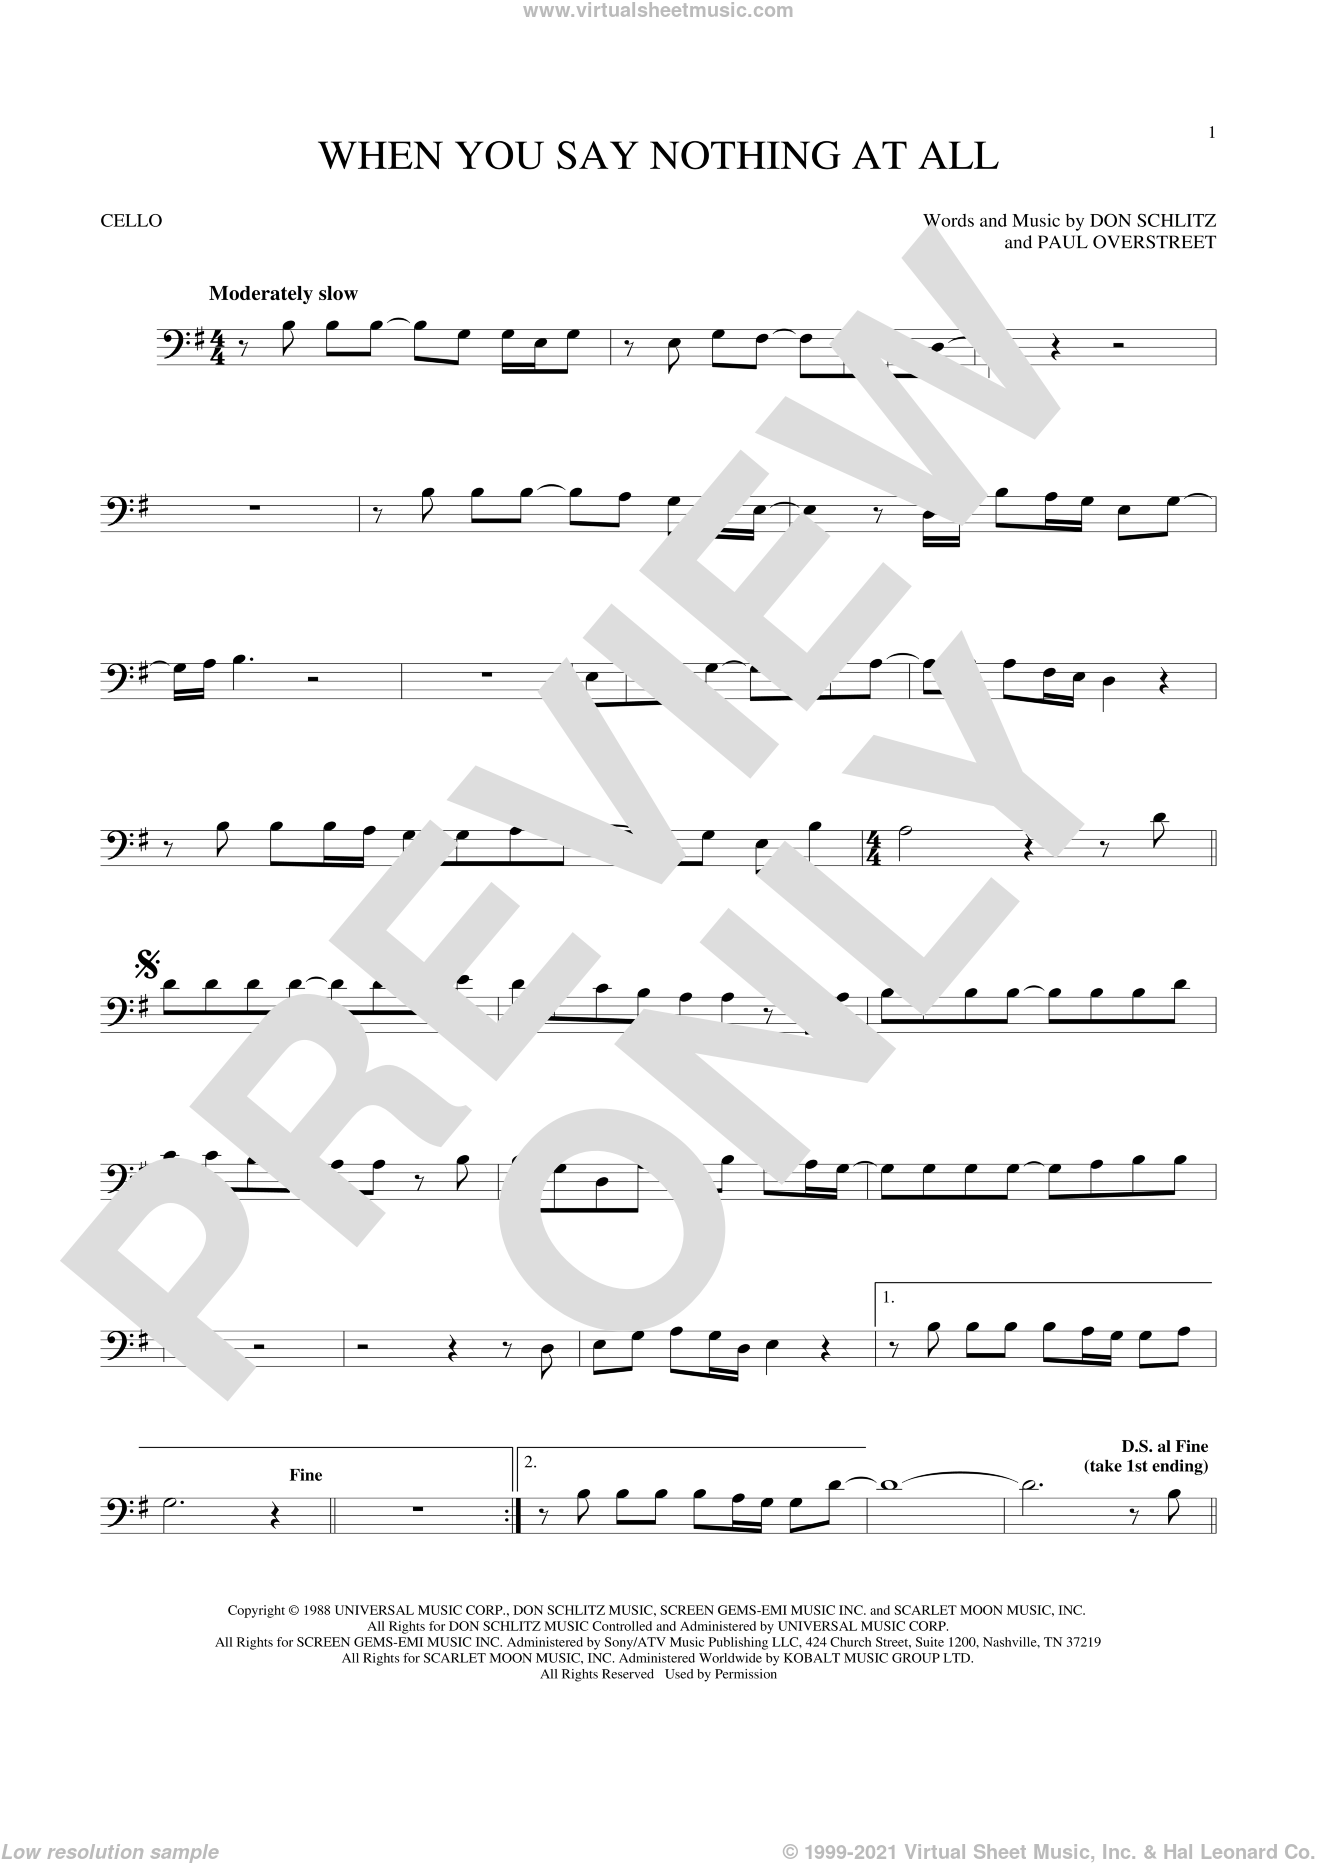 When You Say Nothing At All sheet music for cello solo by Alison Krauss & Union Station, Keith Whitley, Don Schlitz and Paul Overstreet, wedding score, intermediate